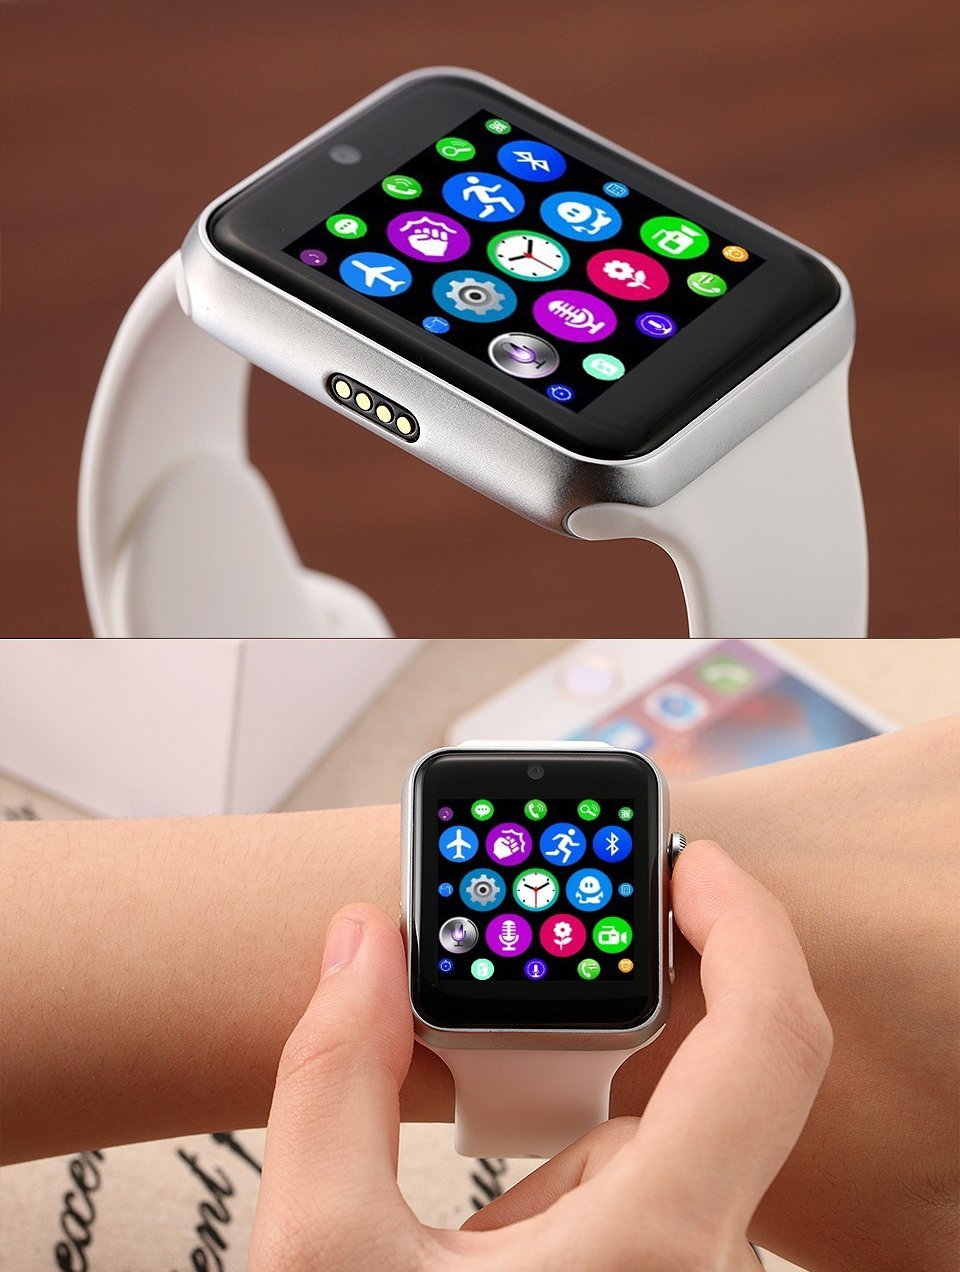 Amazon.com: ⌚ LEMFO LF07 Bluetooth Smart Watch SmartWatch for Apple iPhone iOS Android Smartphones Looks Like Apple Watch Reloj Inteligente (White Silver): ...